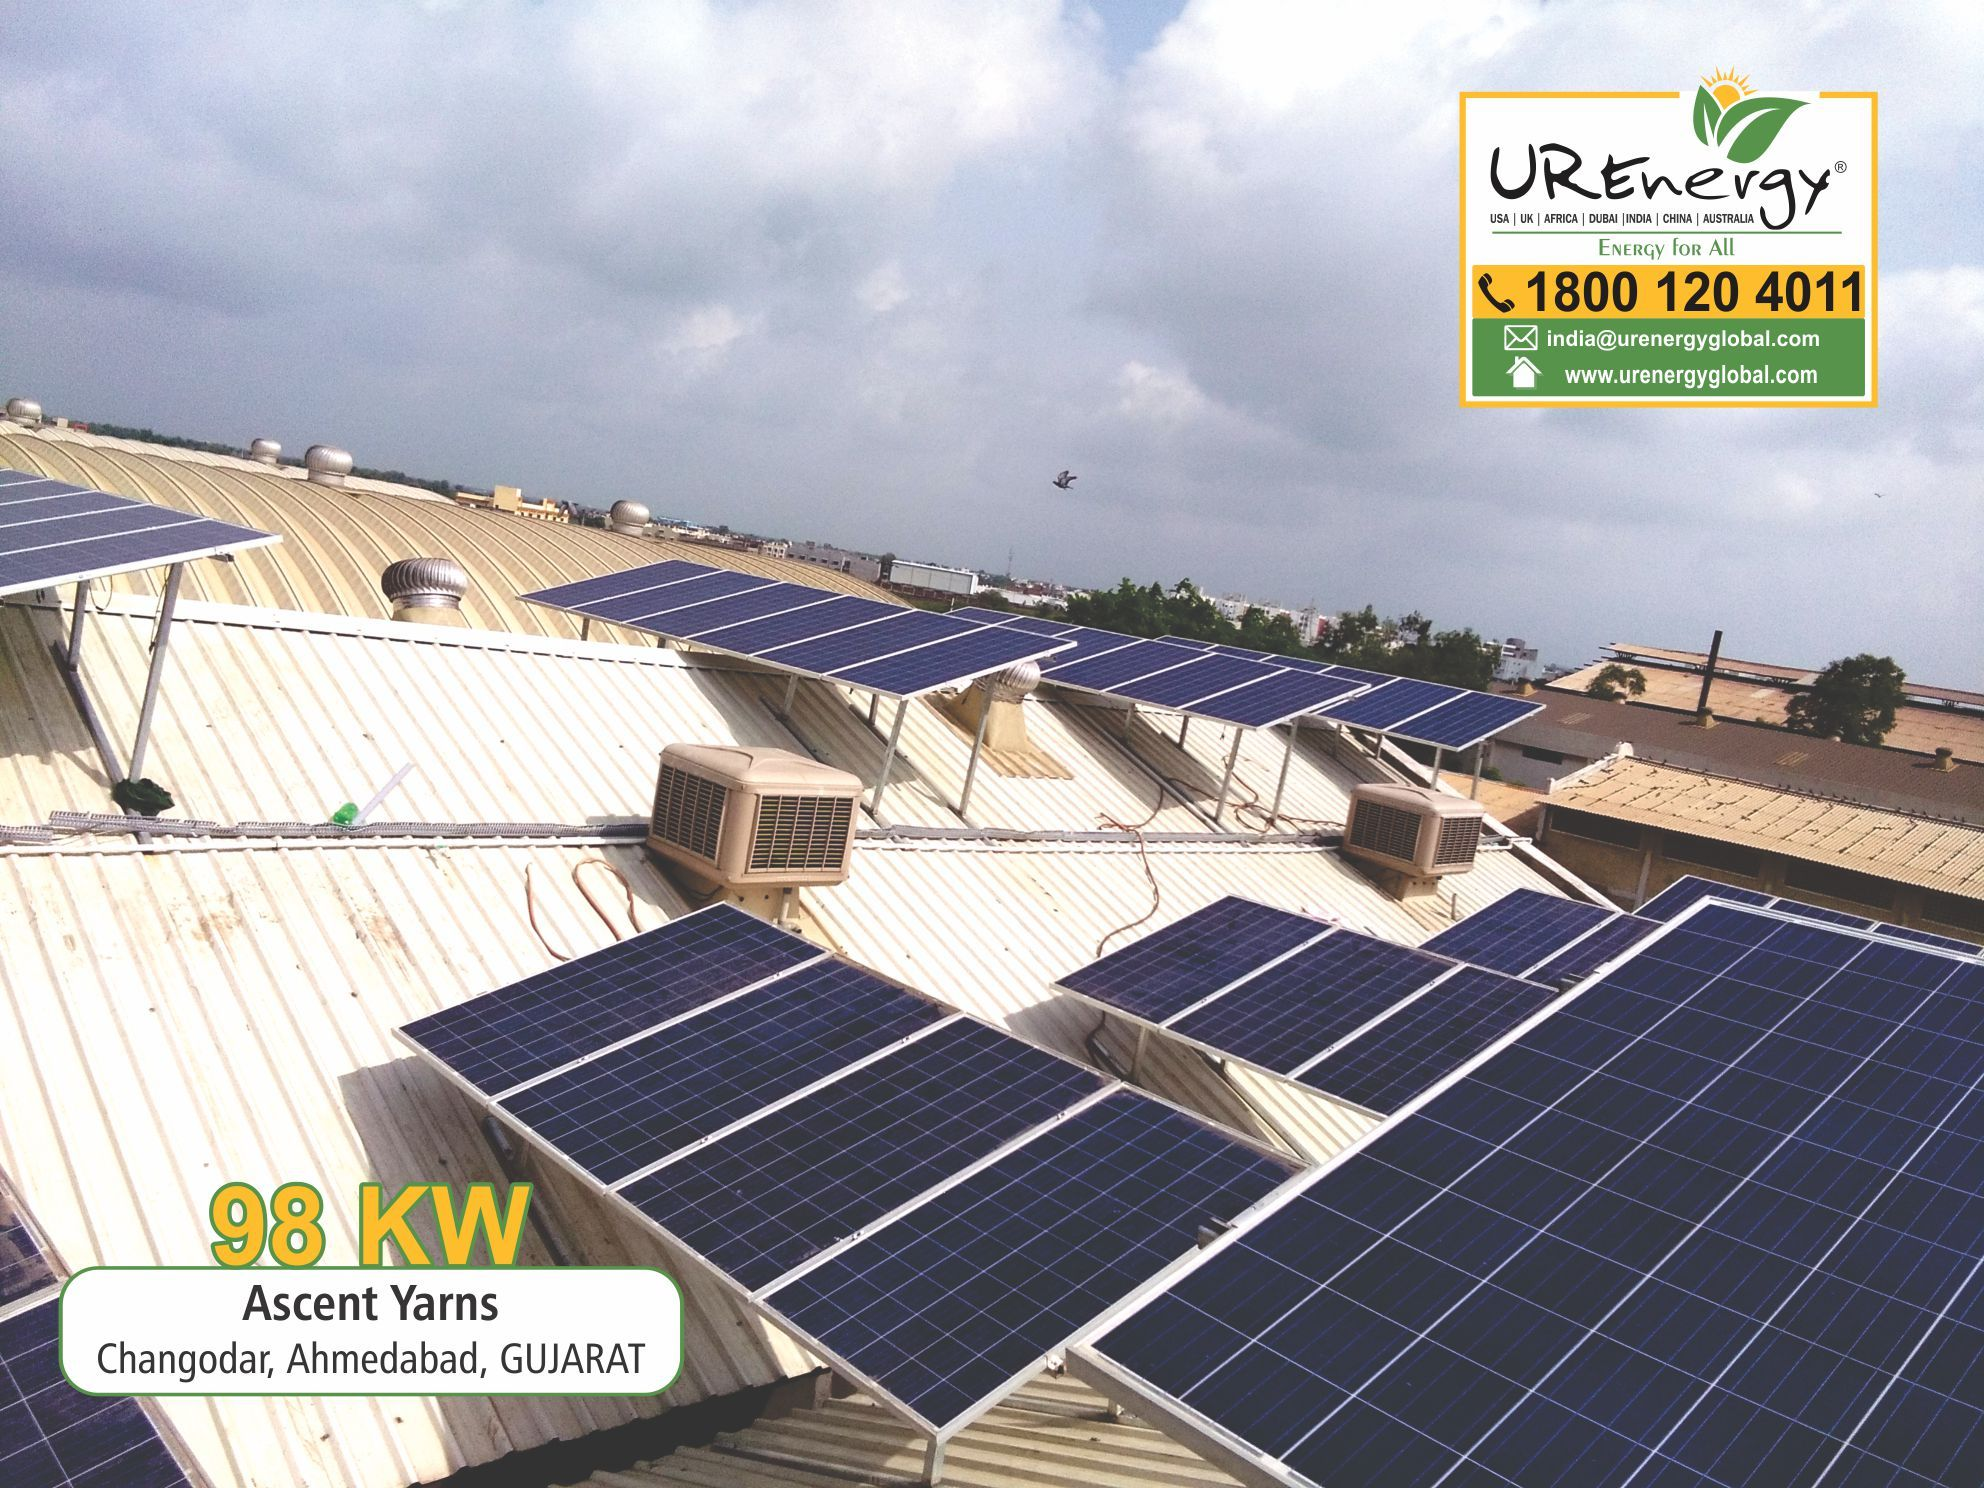 Rooftop Solar Panel Inverters Water Pump Solar Epc Gujarat India U R Energy Solar Solar Water Pump Solar Panels